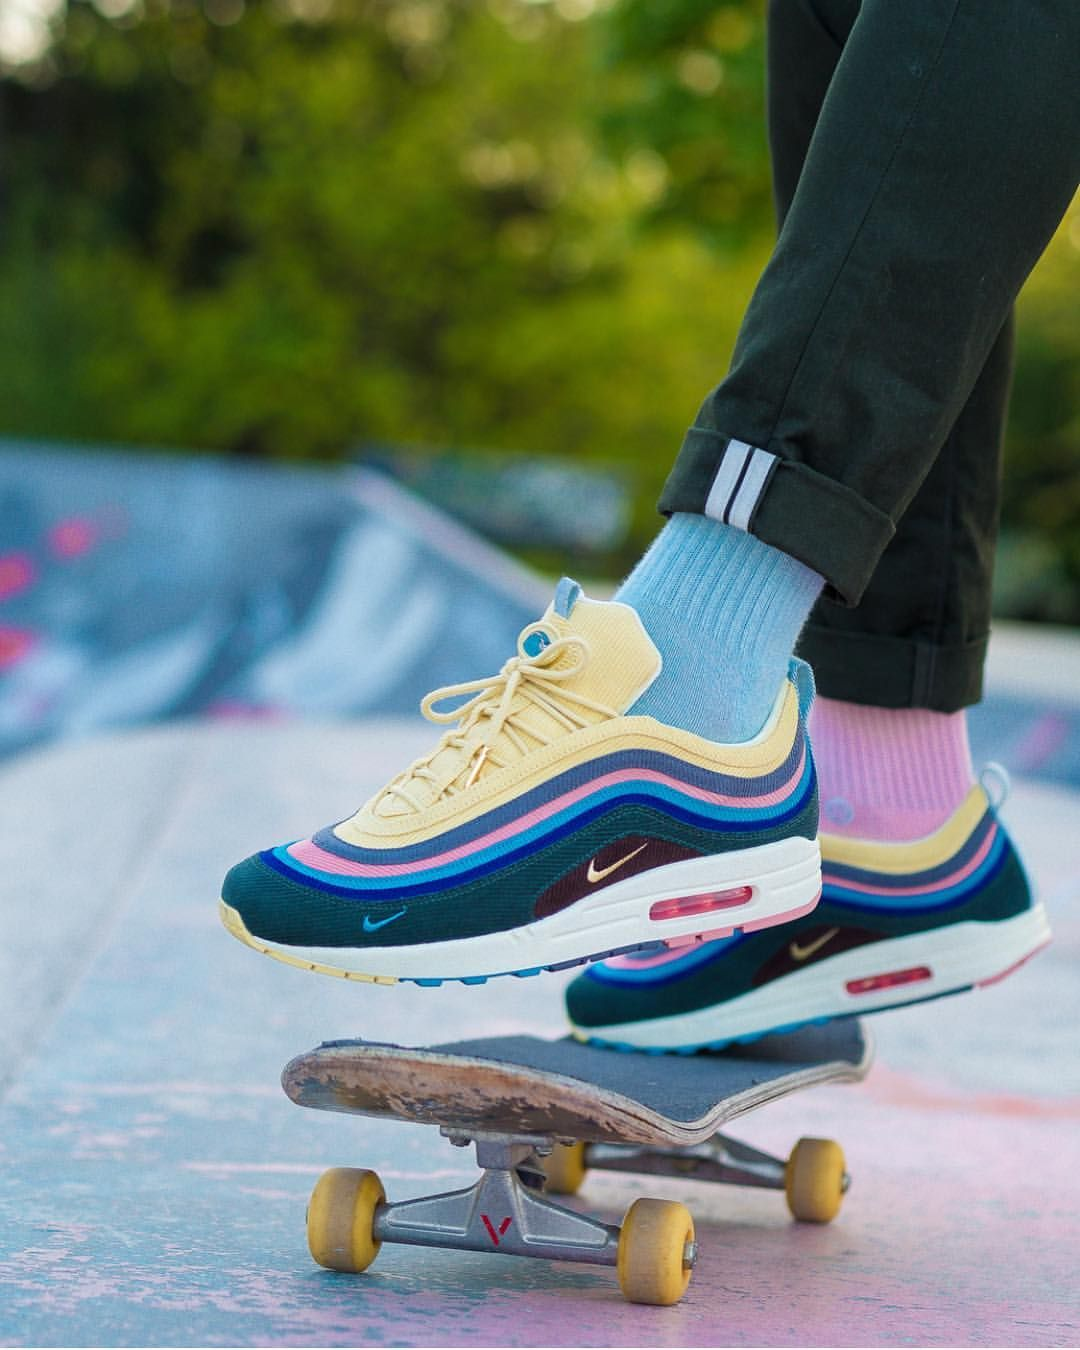 Nike Air Max 1 97 Wotherspoon By Bisso97120 Nike Air Max